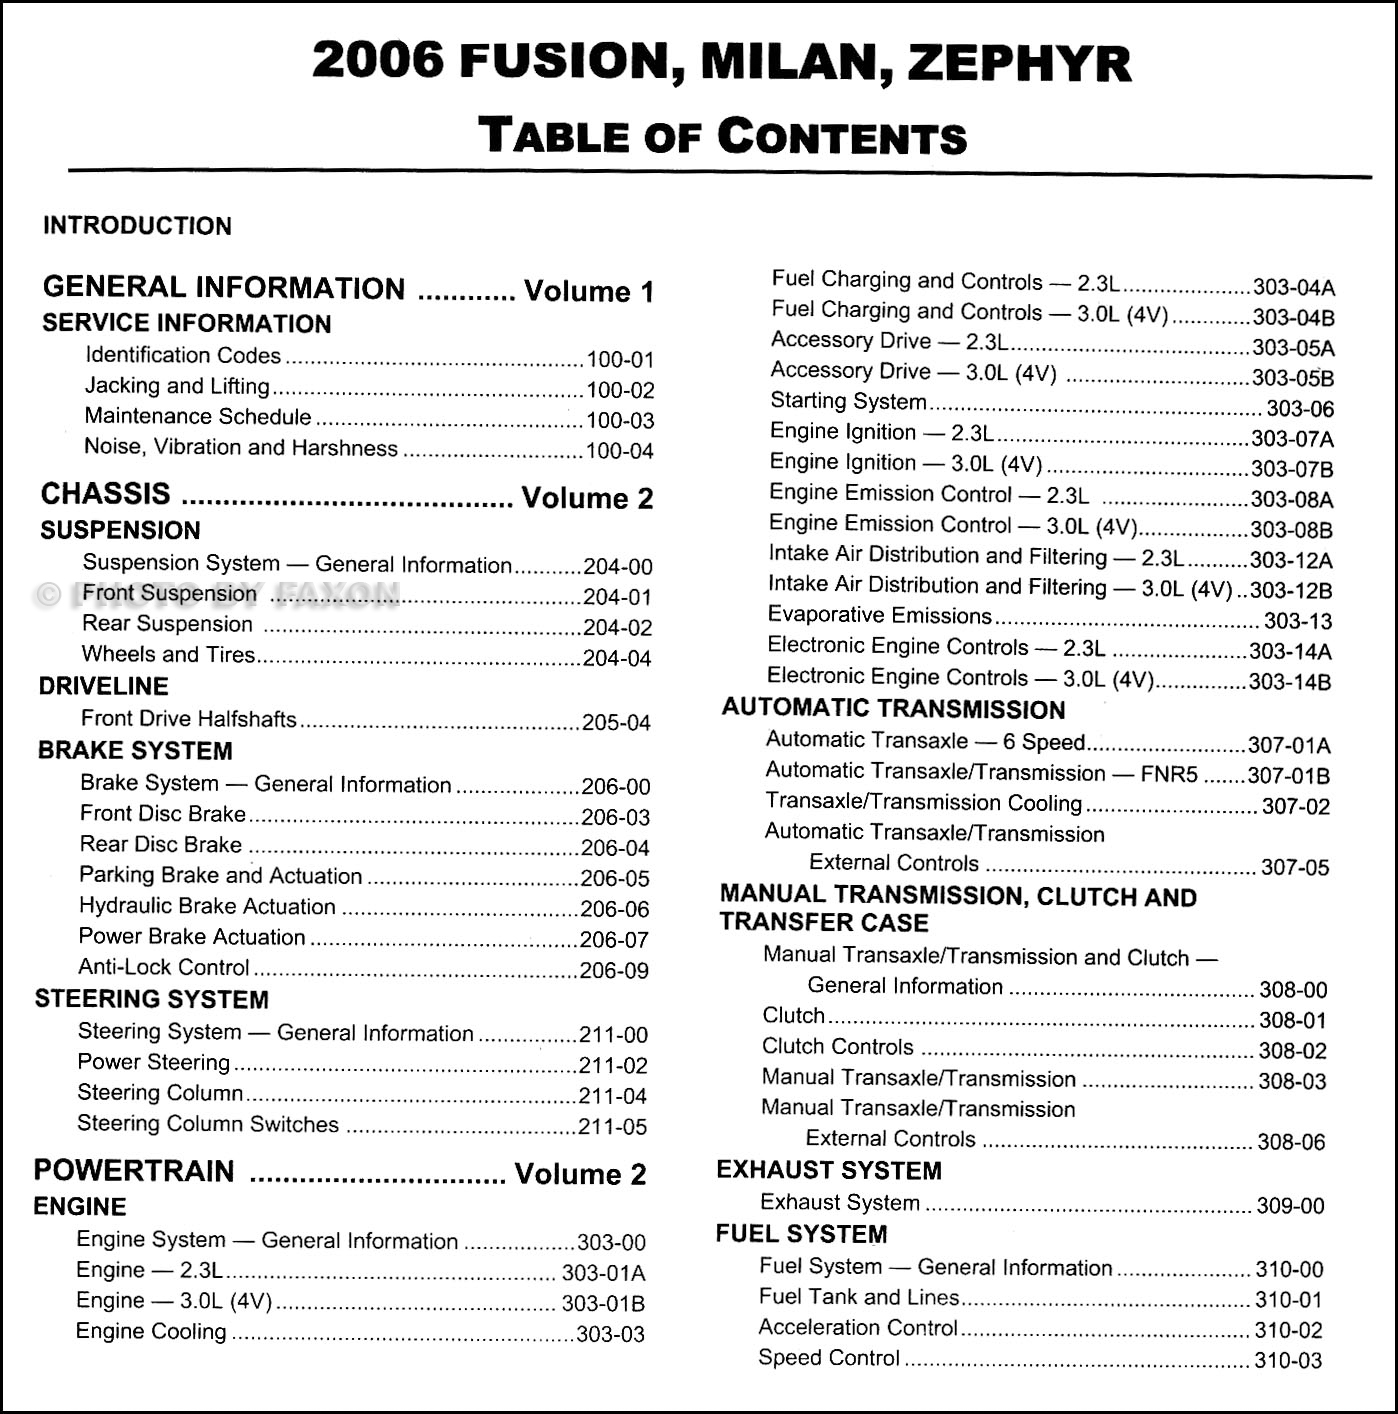 2006 Mercury Milan Fuse Box Diagram 2003 Lincoln Ford Fusion Zephyr Repair Shop Manual 2 Rh Faxonautoliterature Com 2007 Battery